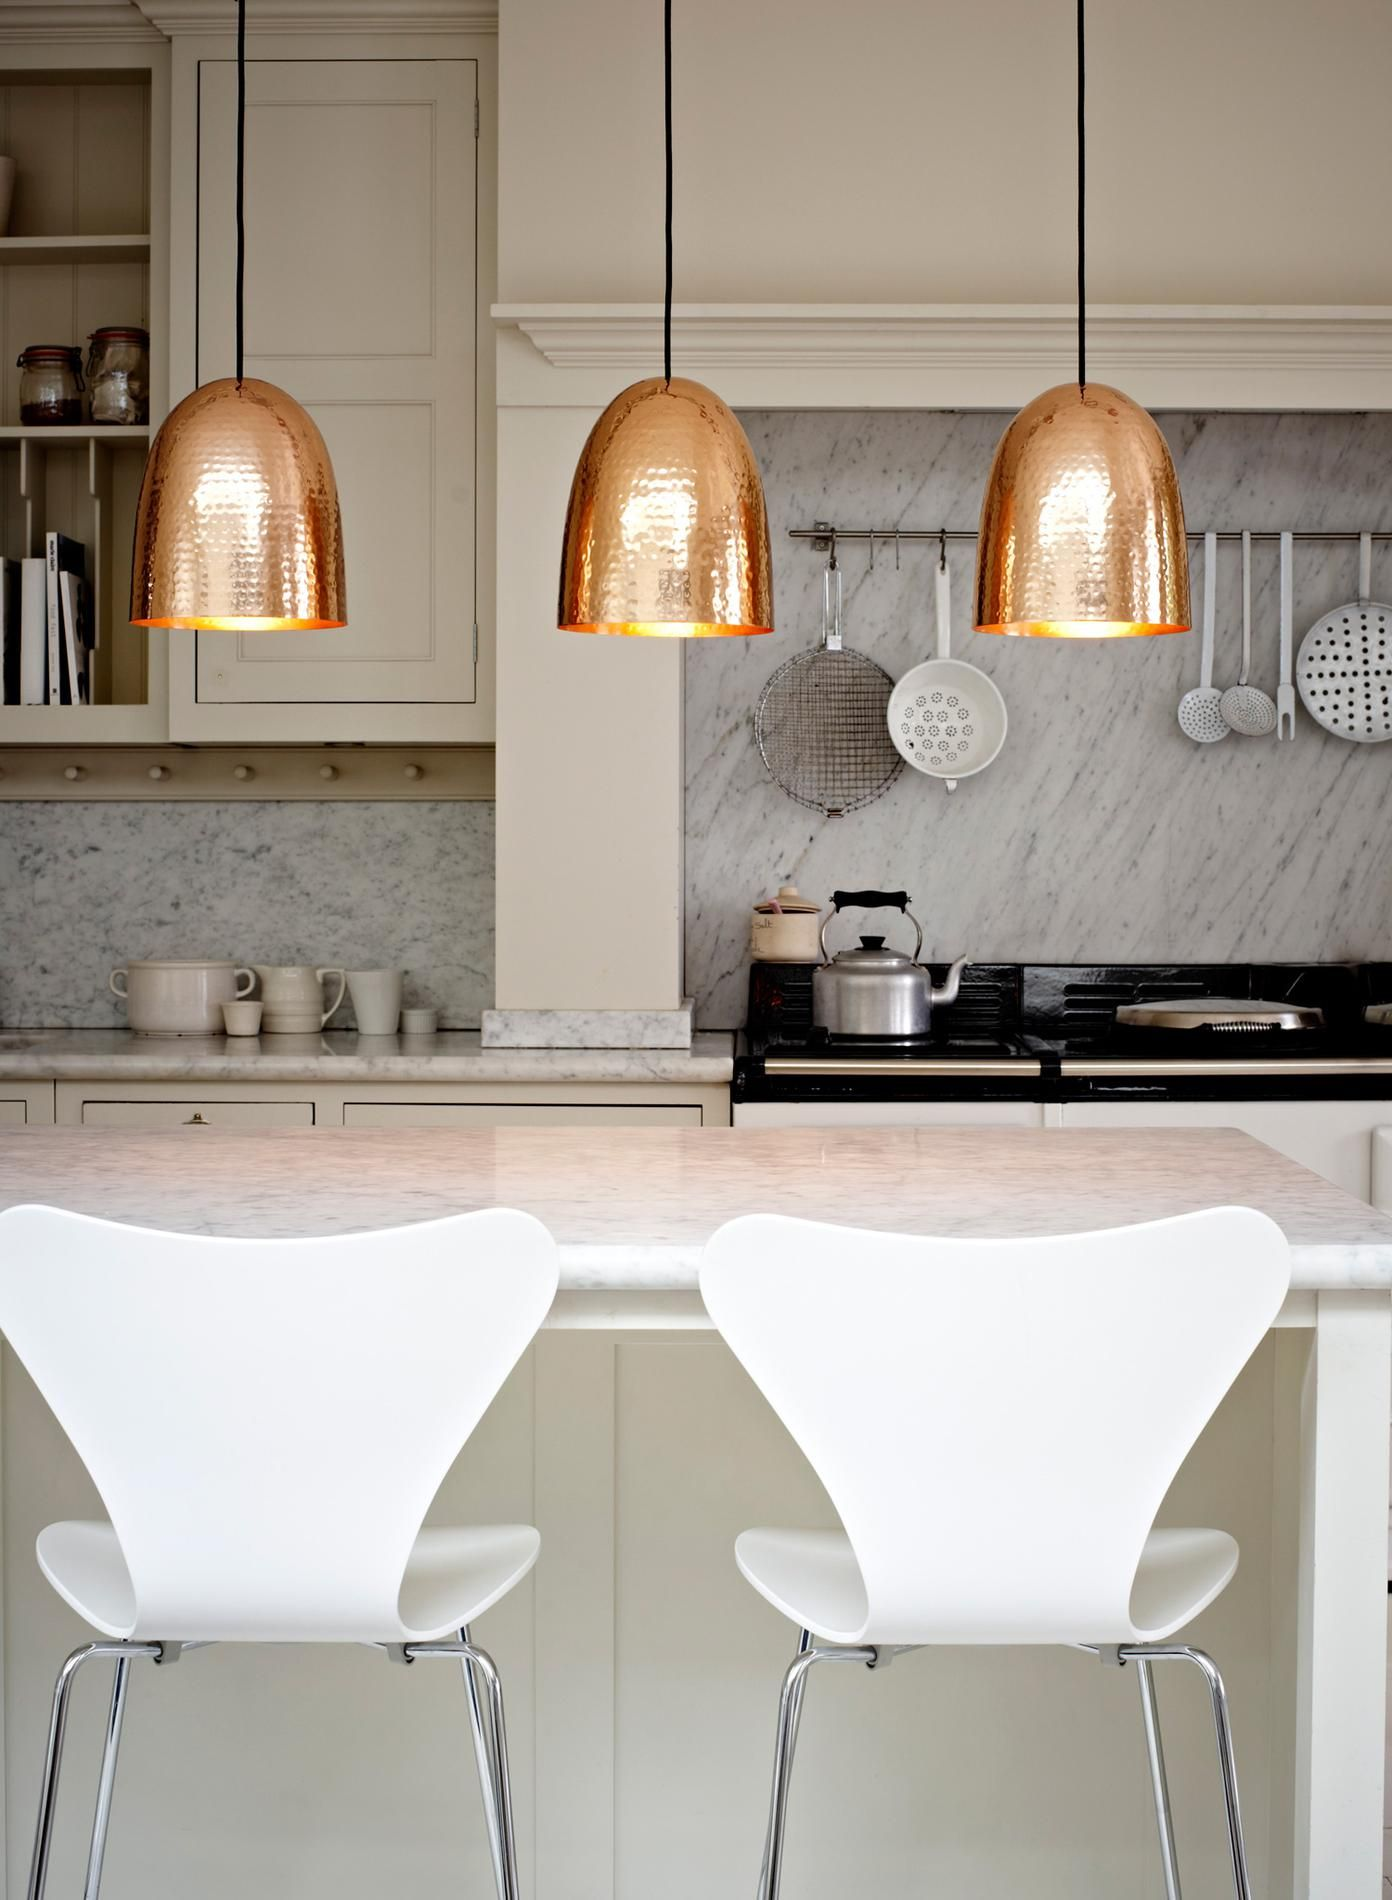 Examples Of Copper Pendant Lighting For Your Home - Lights over breakfast bar